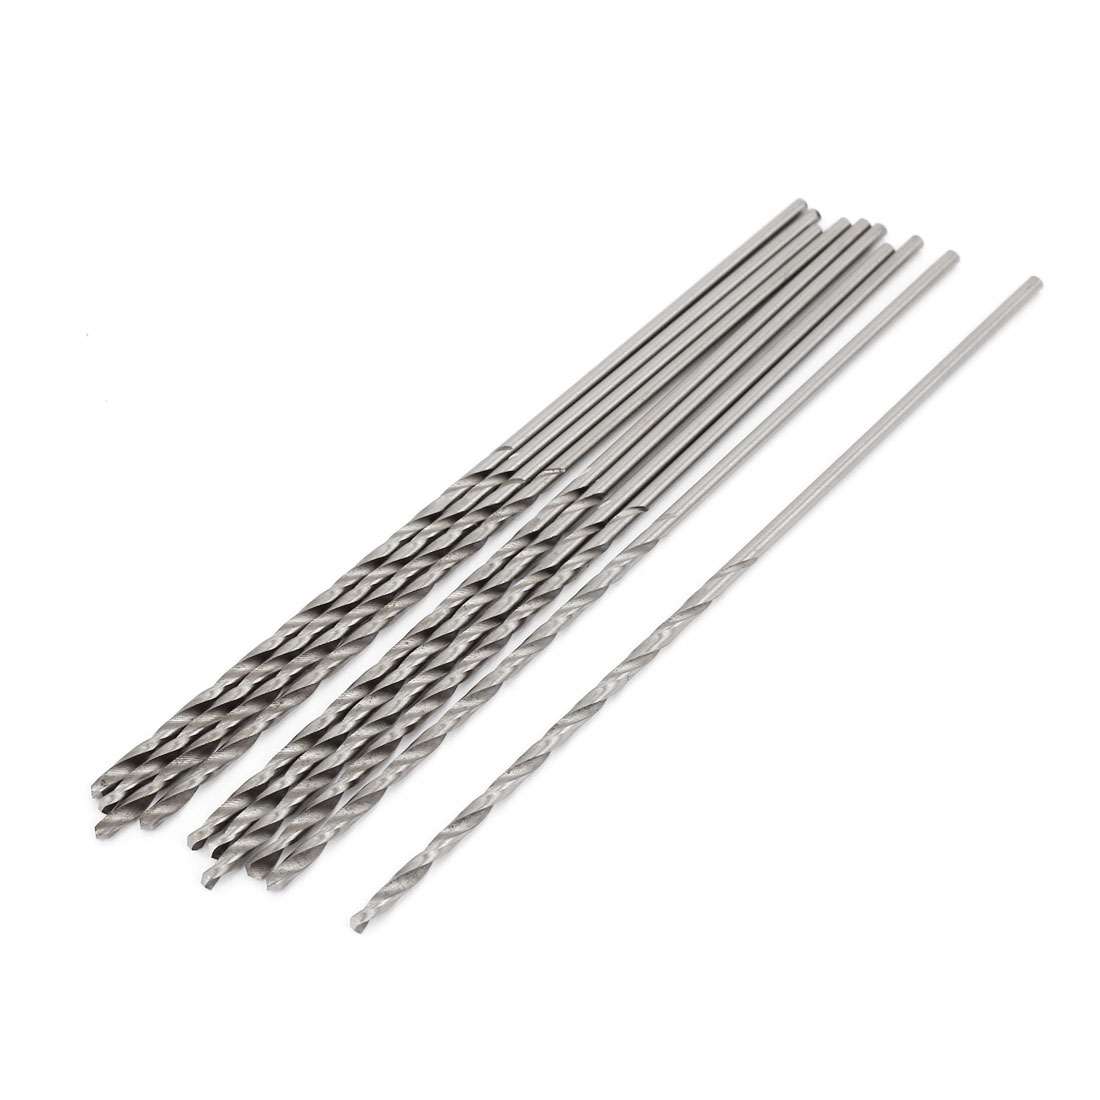 High Speed Steel 2.5mm x 80mm Tip Straight Shank Twist Drill Bit 10 Pcs